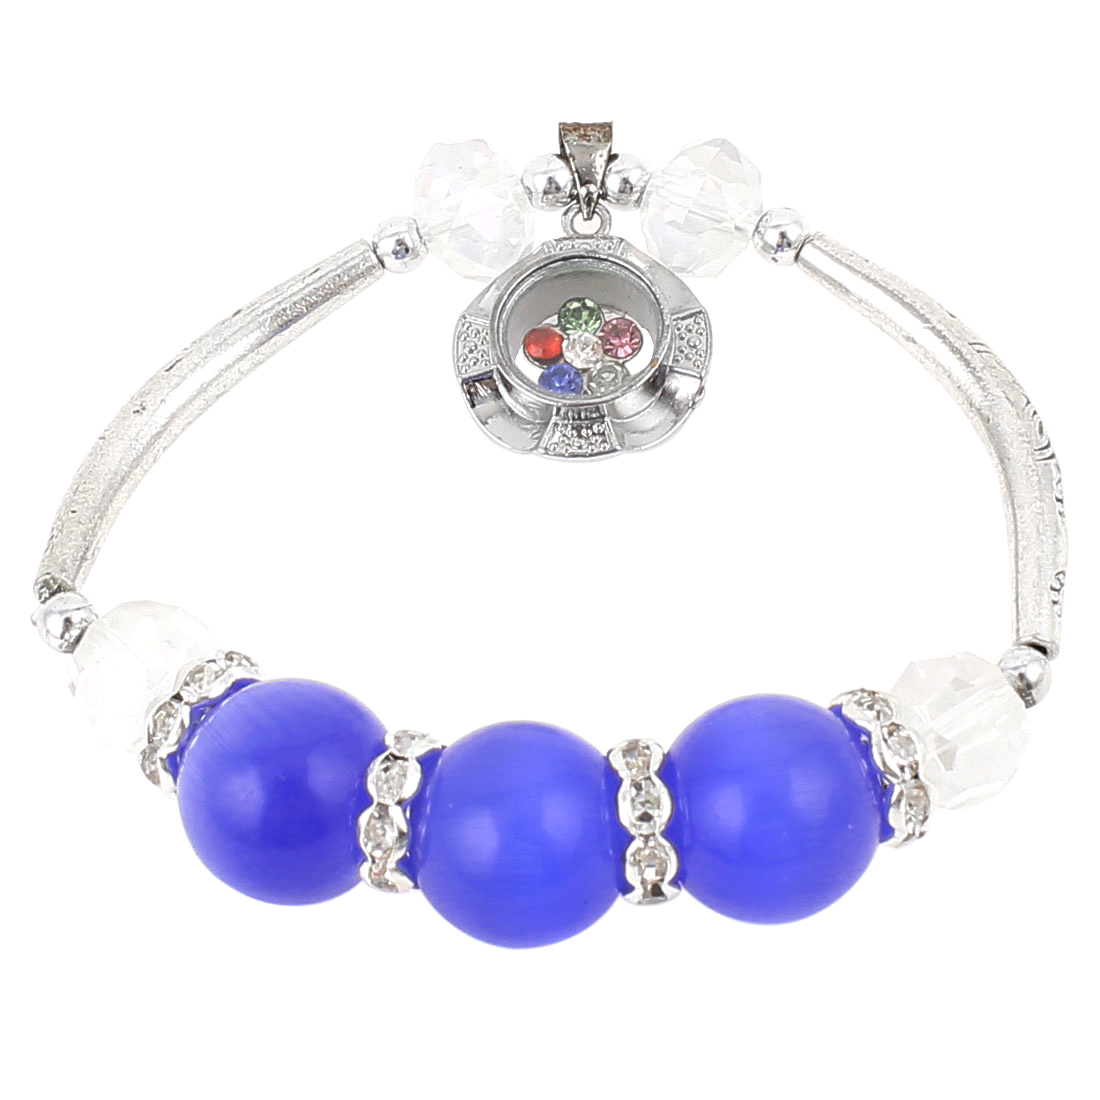 Lady Flower Pendant Decor Elastic Round Beads Lucky Bracelet Bangle Silver Tone Blue